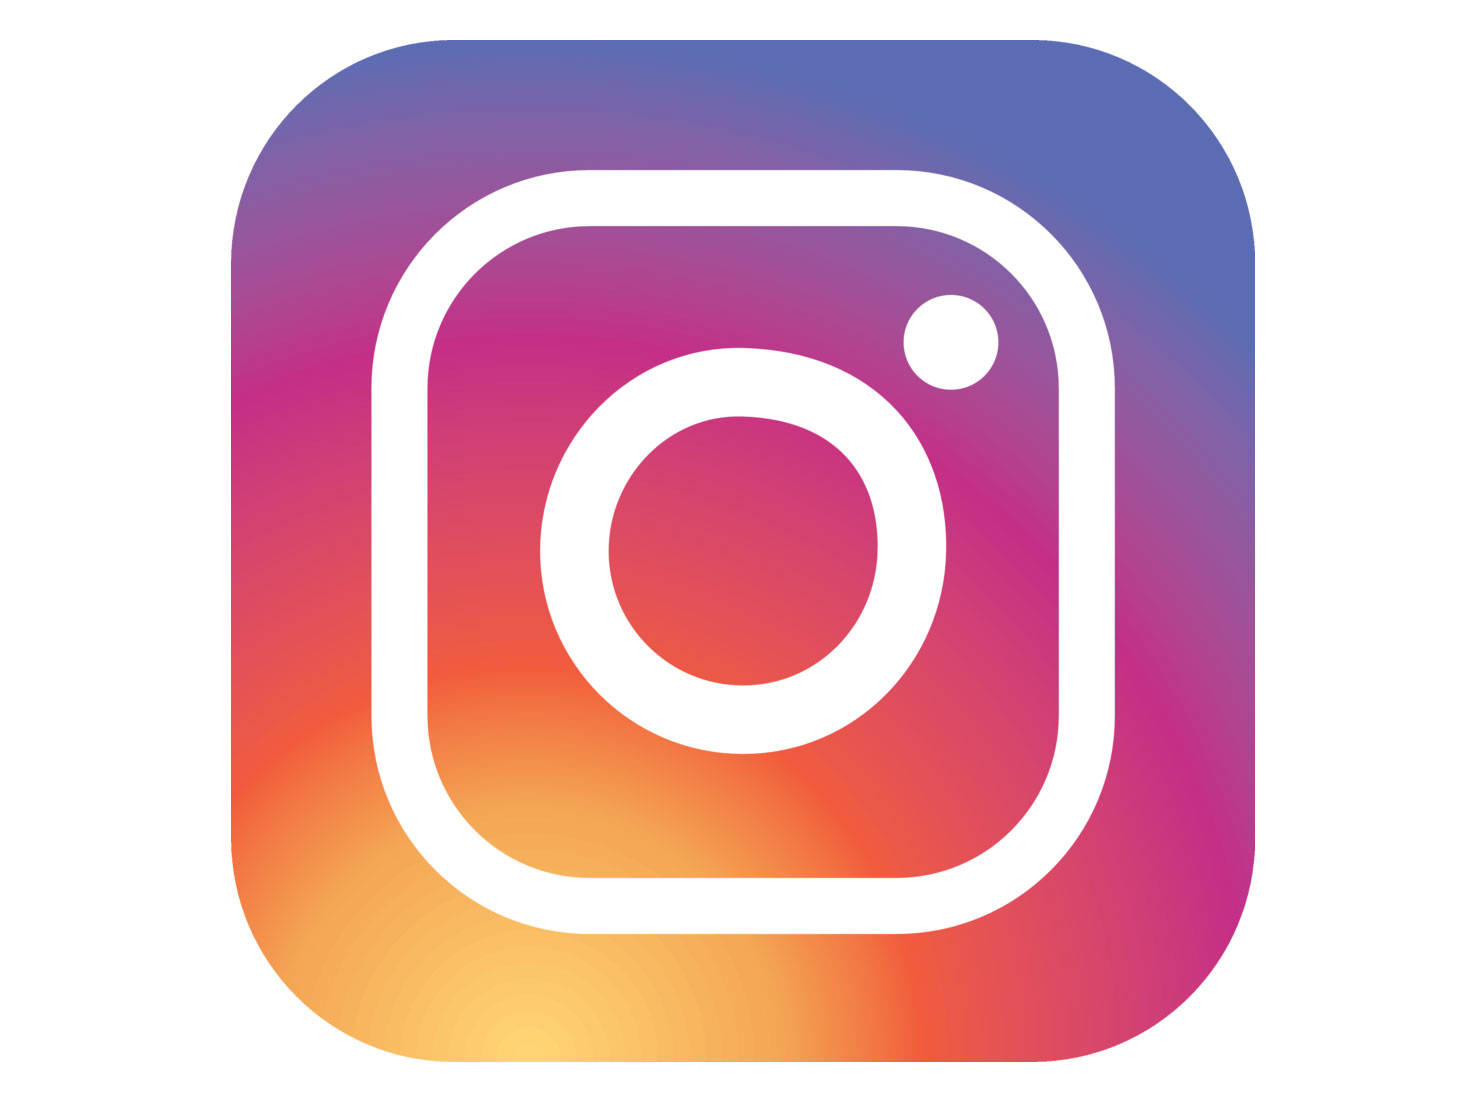 So far the only way of upload - Instagram Clipart